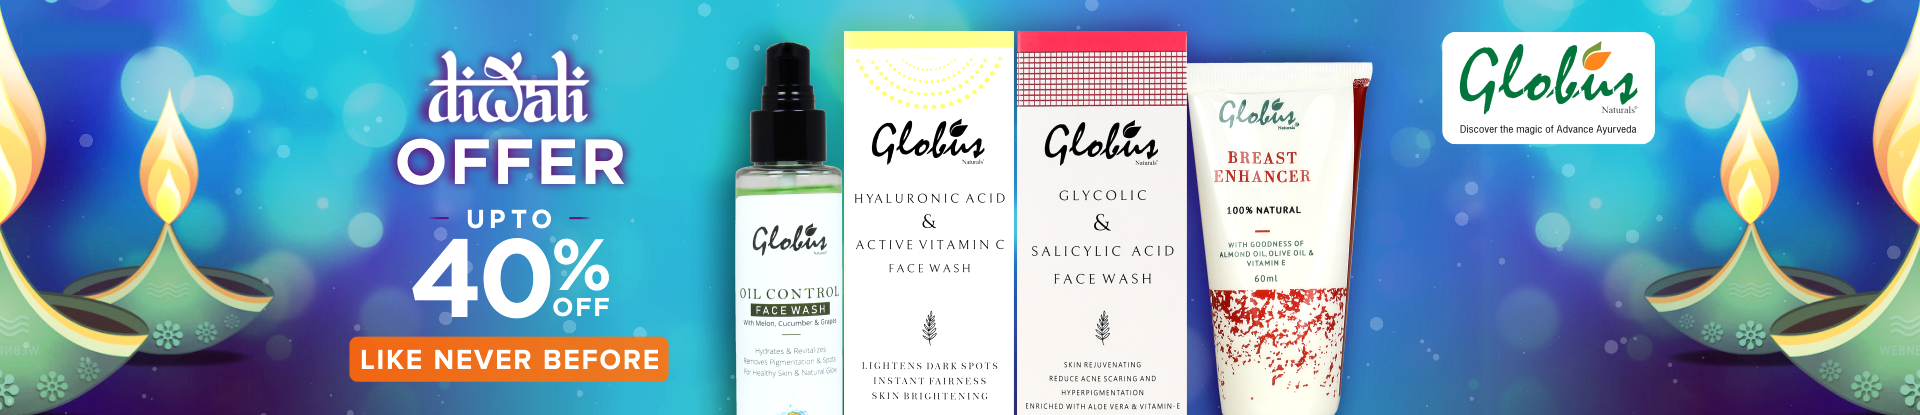 Buy Globus Remedies All Products Online